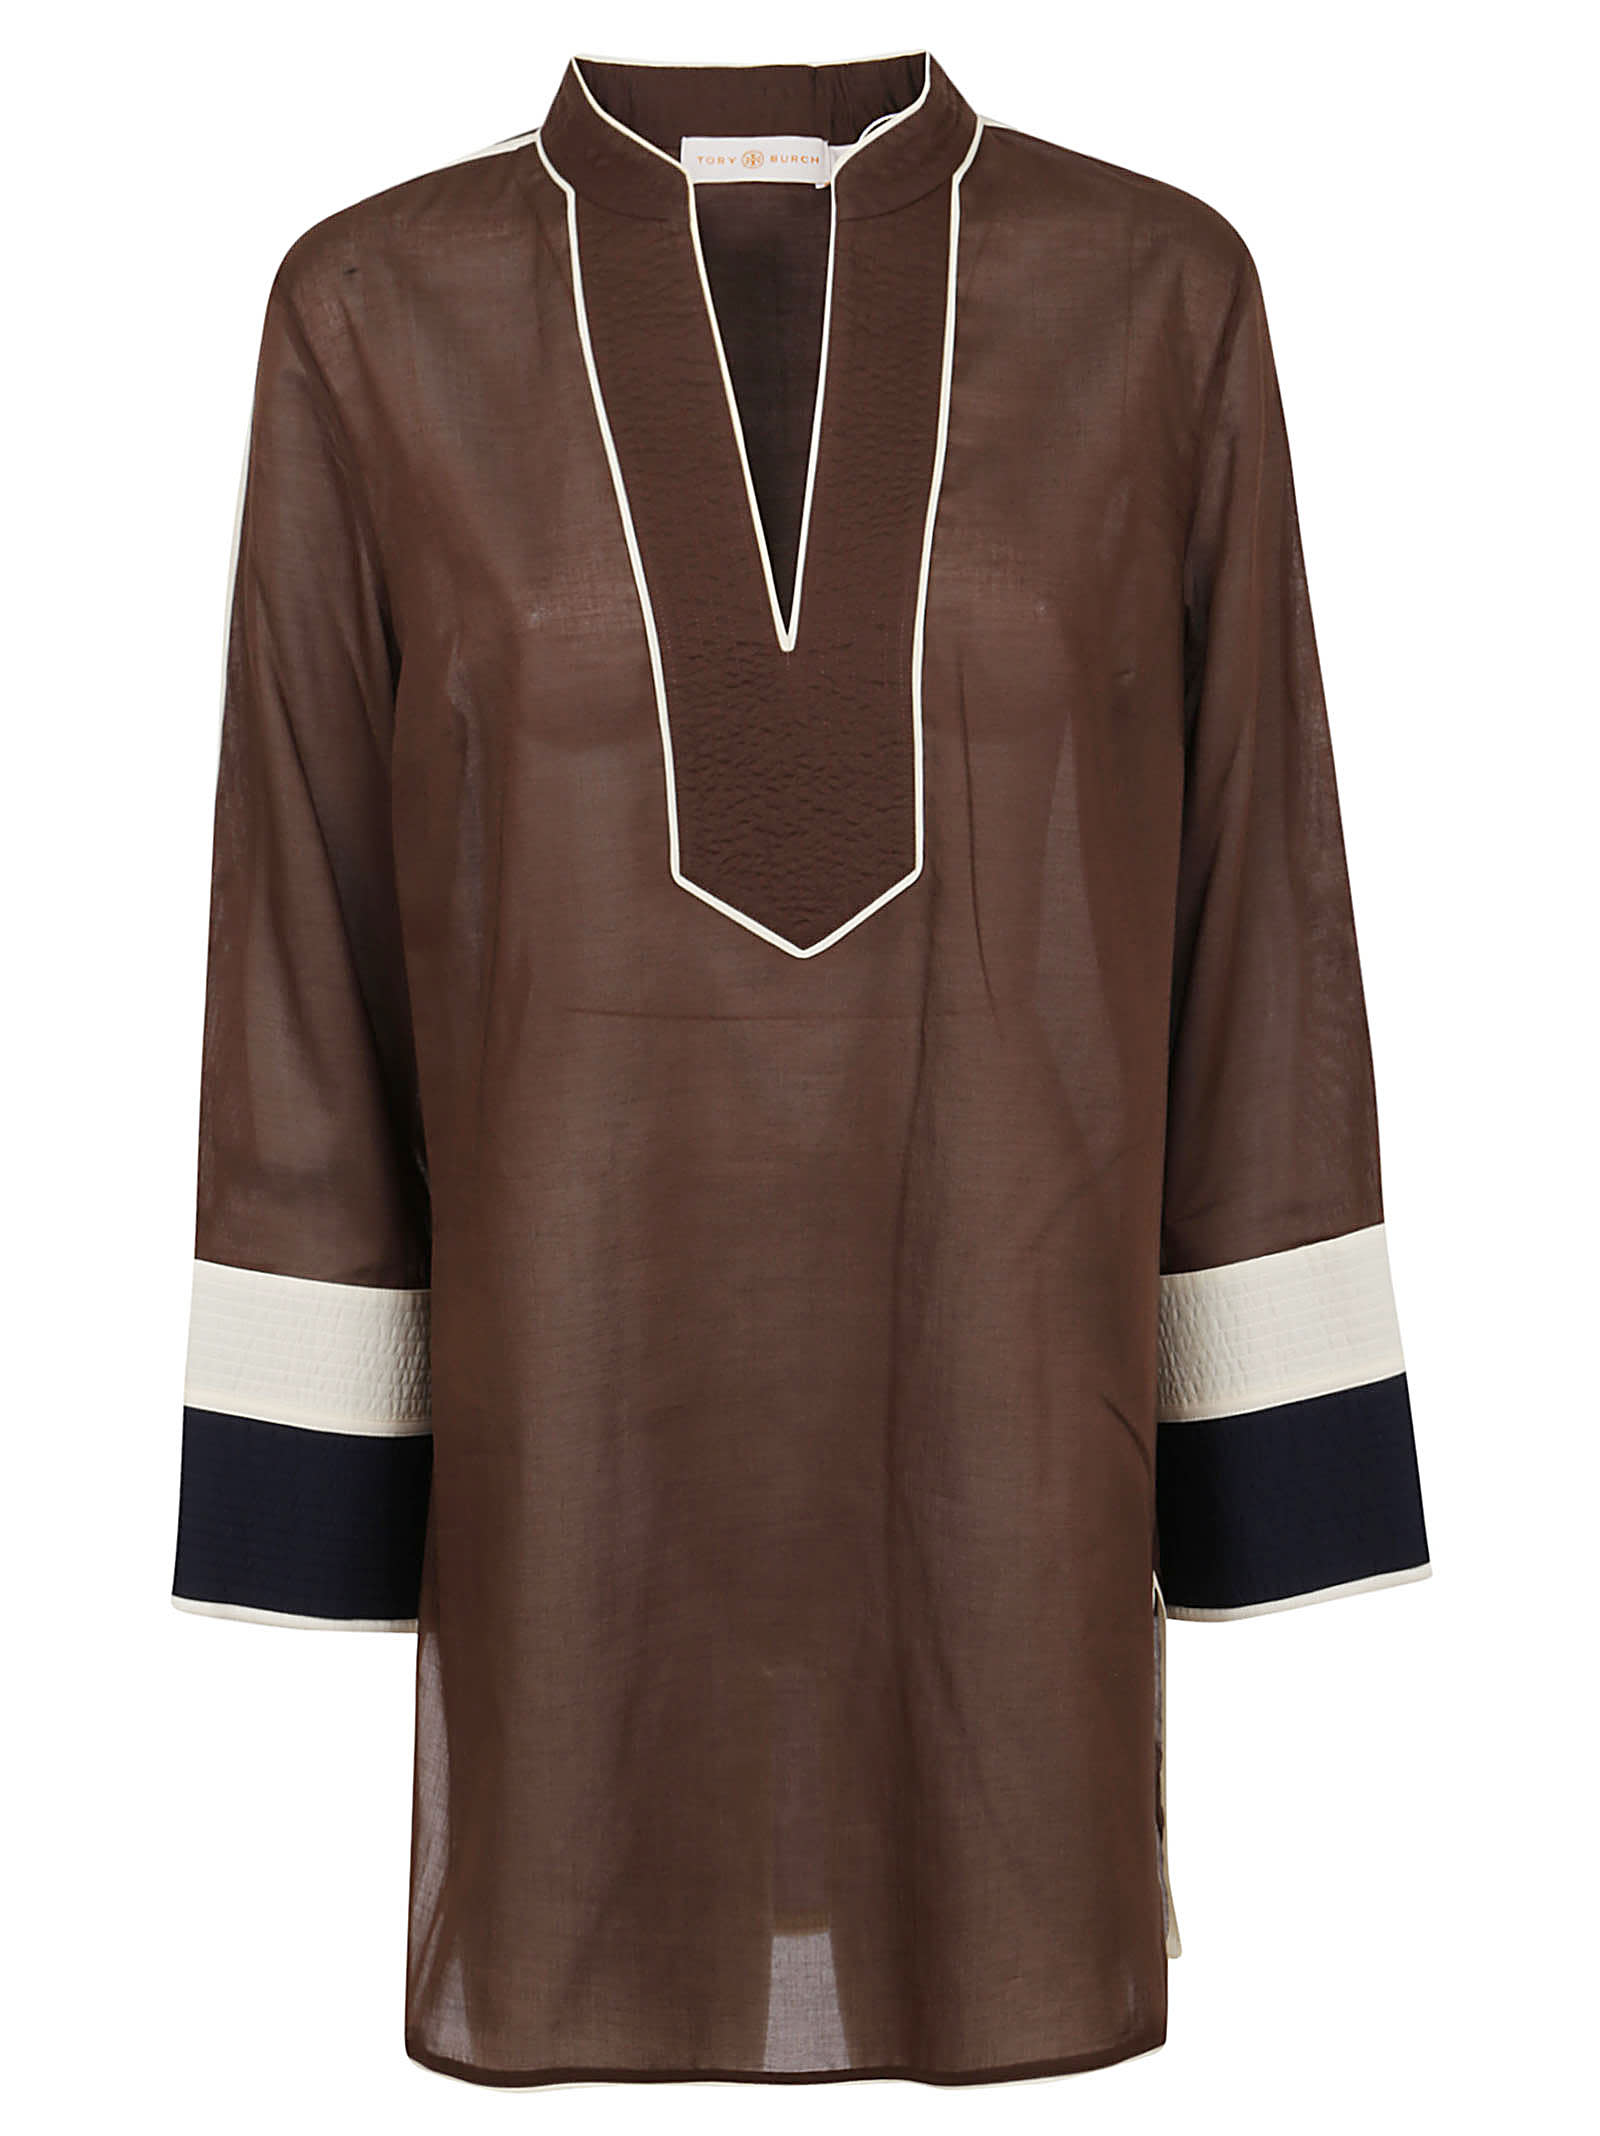 Buy Tory Burch Color-blocked Tunic online, shop Tory Burch with free shipping